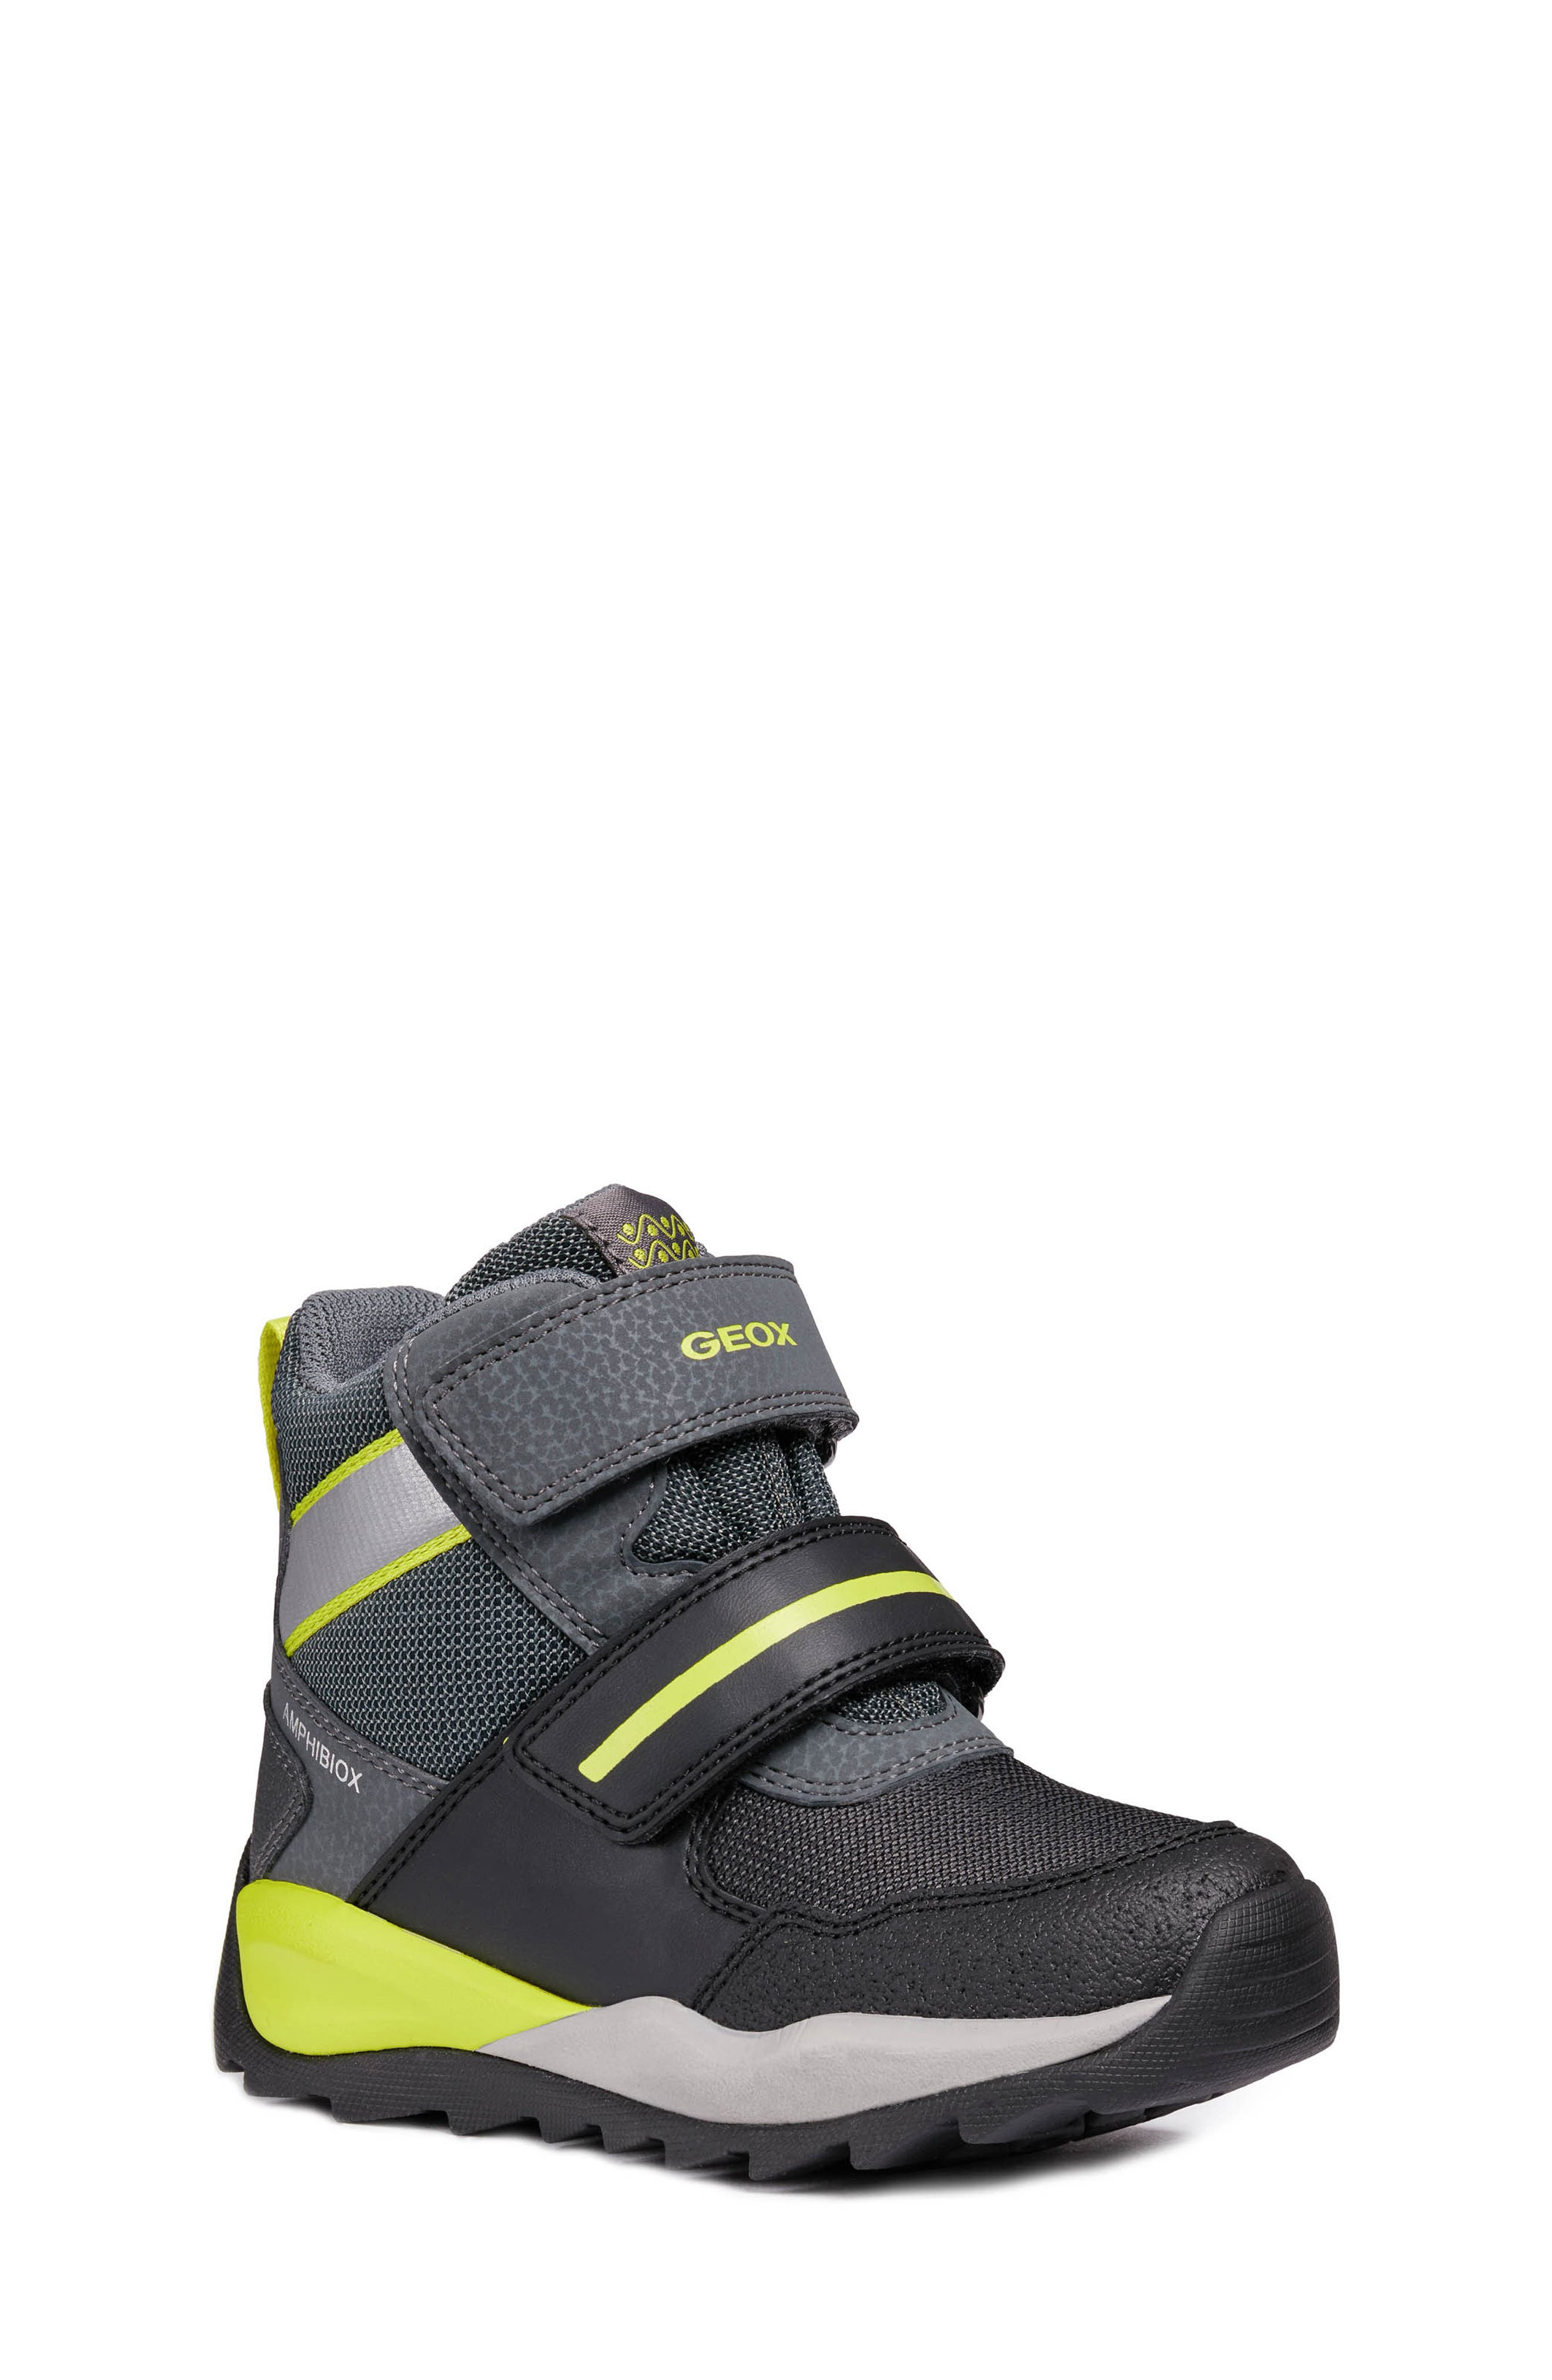 GEOX, Orizont ABX Waterproof Boot, Main thumbnail 1, color, BLACK/ LIME